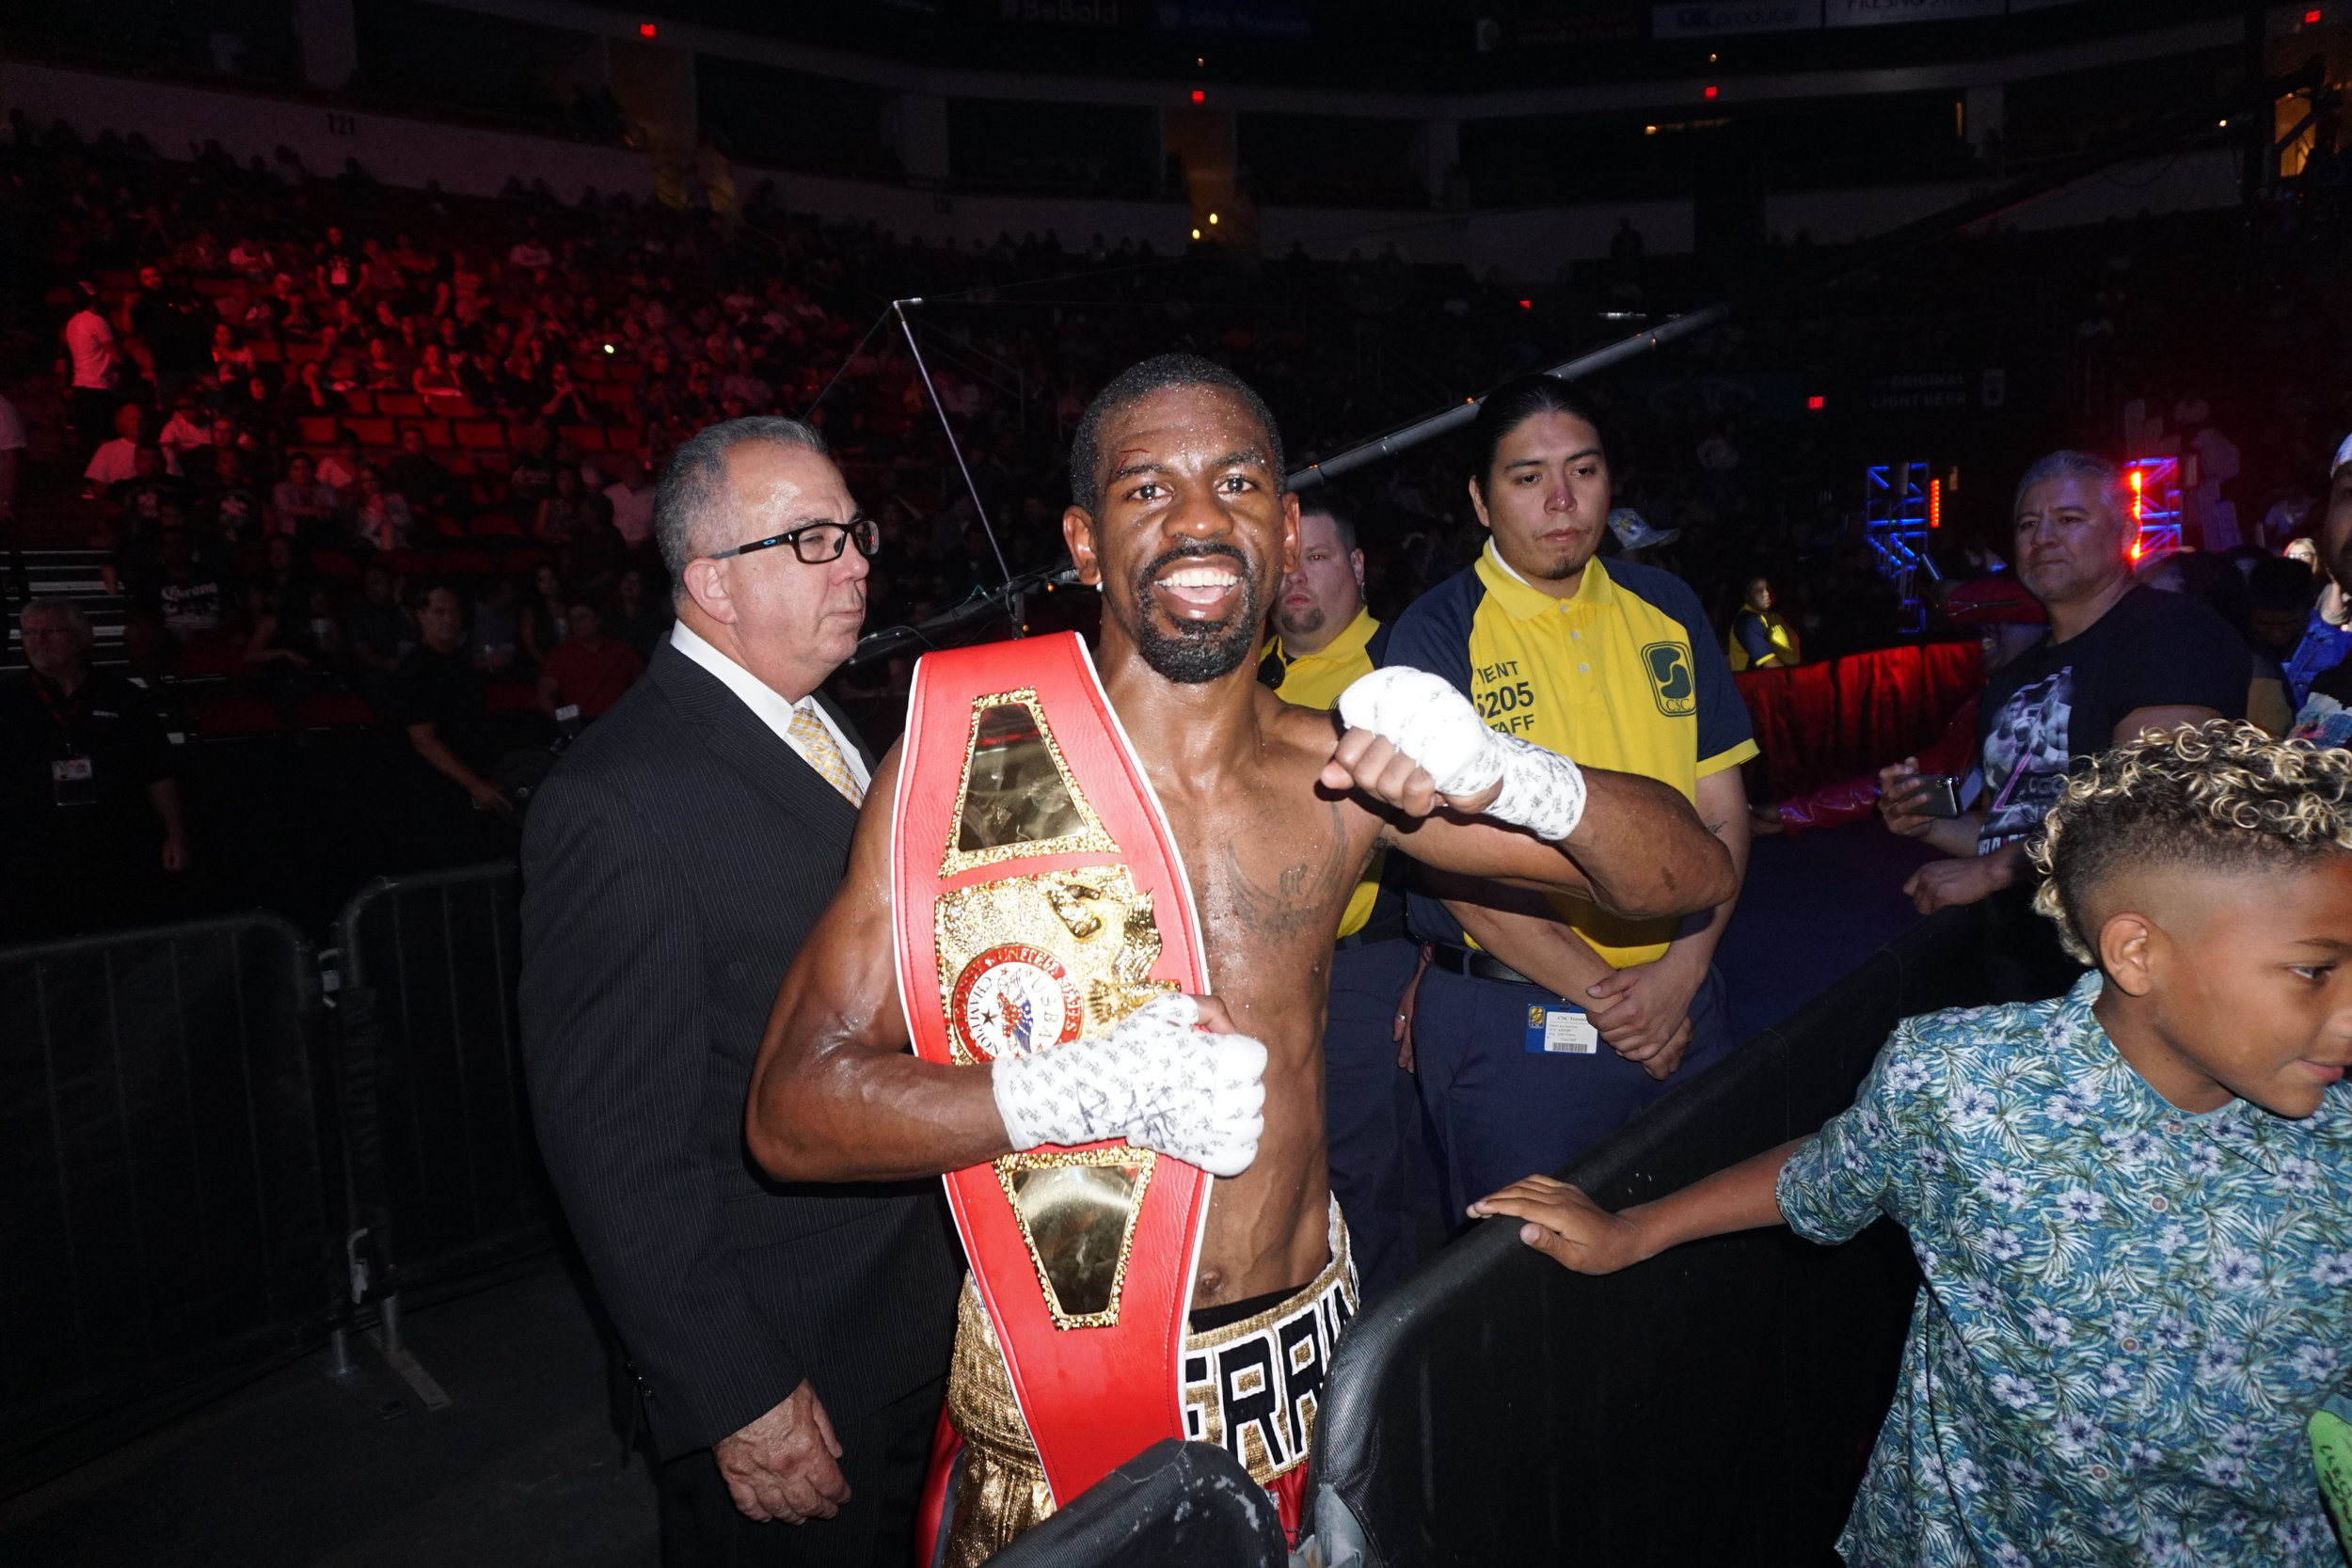 Military veteran Jamel Herring following his USBA 130 Title victory over John Moralde.